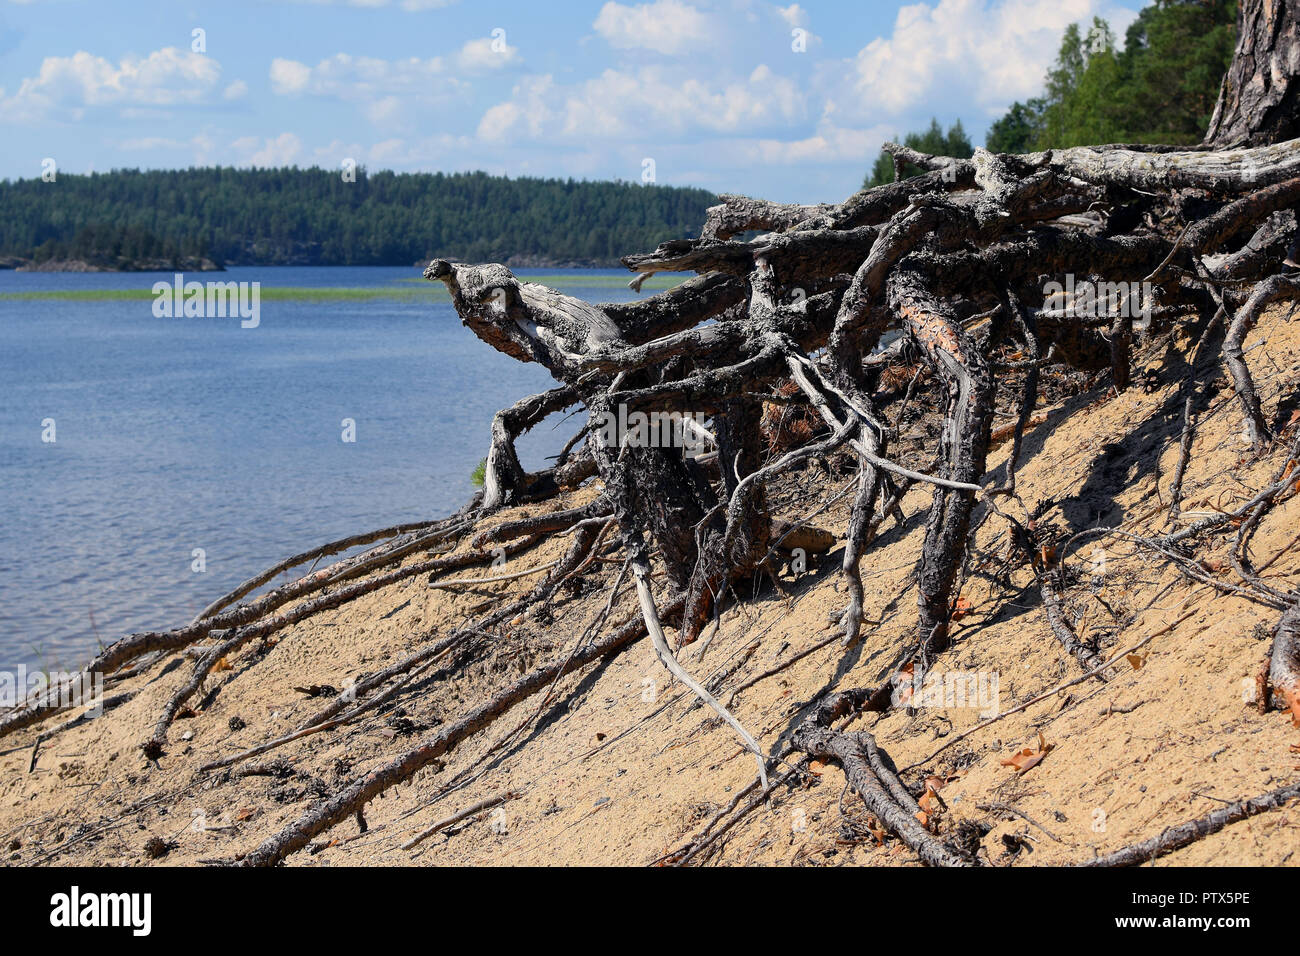 Exposed roots and beautiful lake view on background. Location: Pistohiekka, Puumala, Finland. - Stock Image